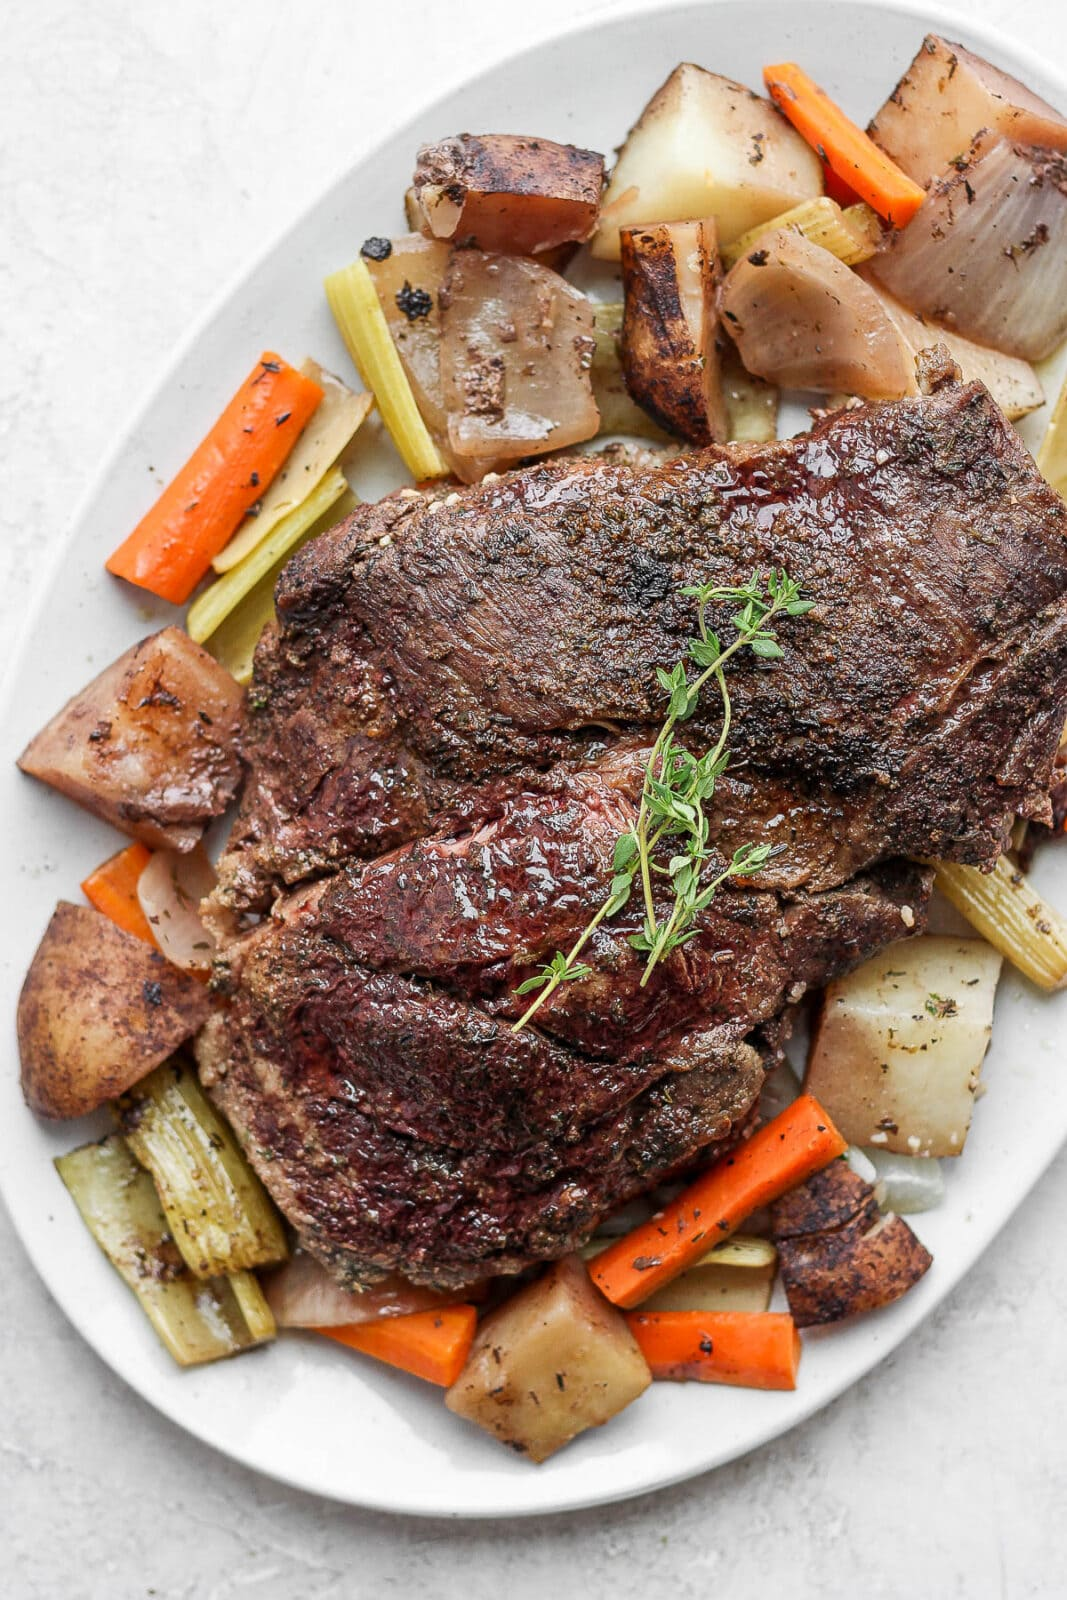 Plate with cooked slow cooker pot roast and vegetables.